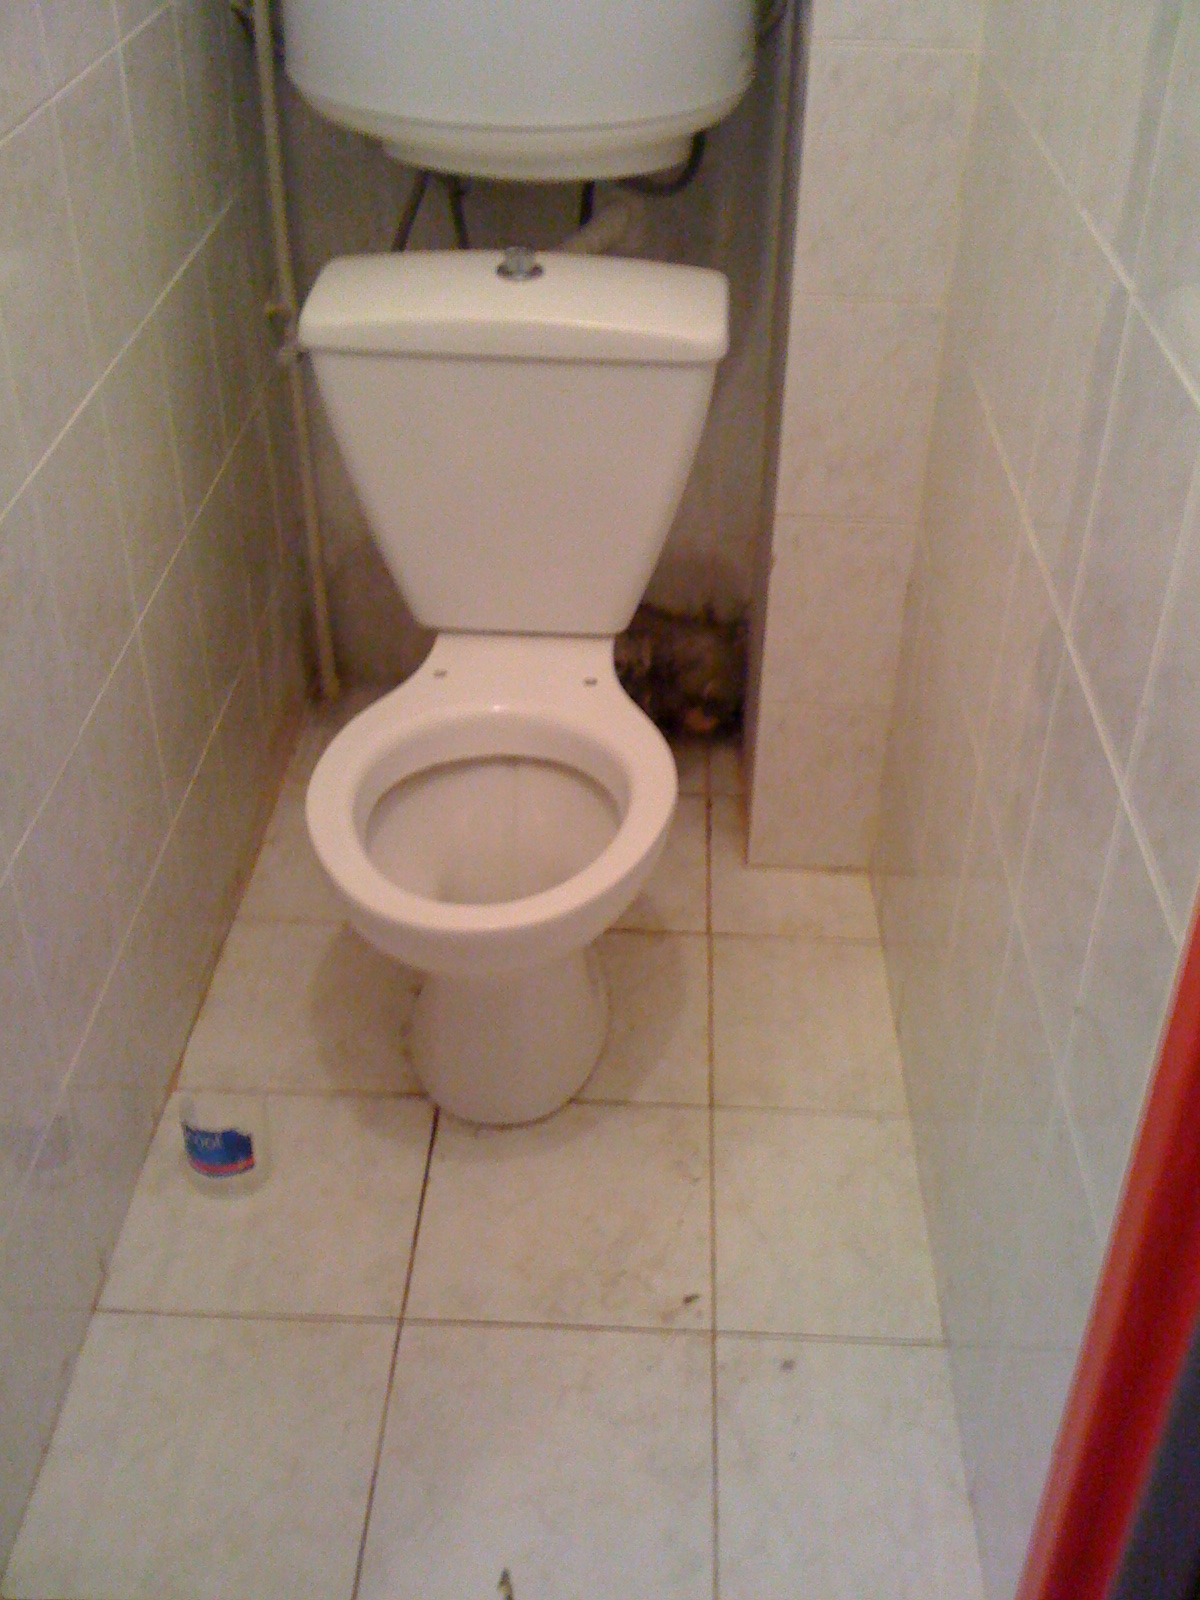 Comment cacher tuyaux toilettes for Comment cacher des tuyaux apparents